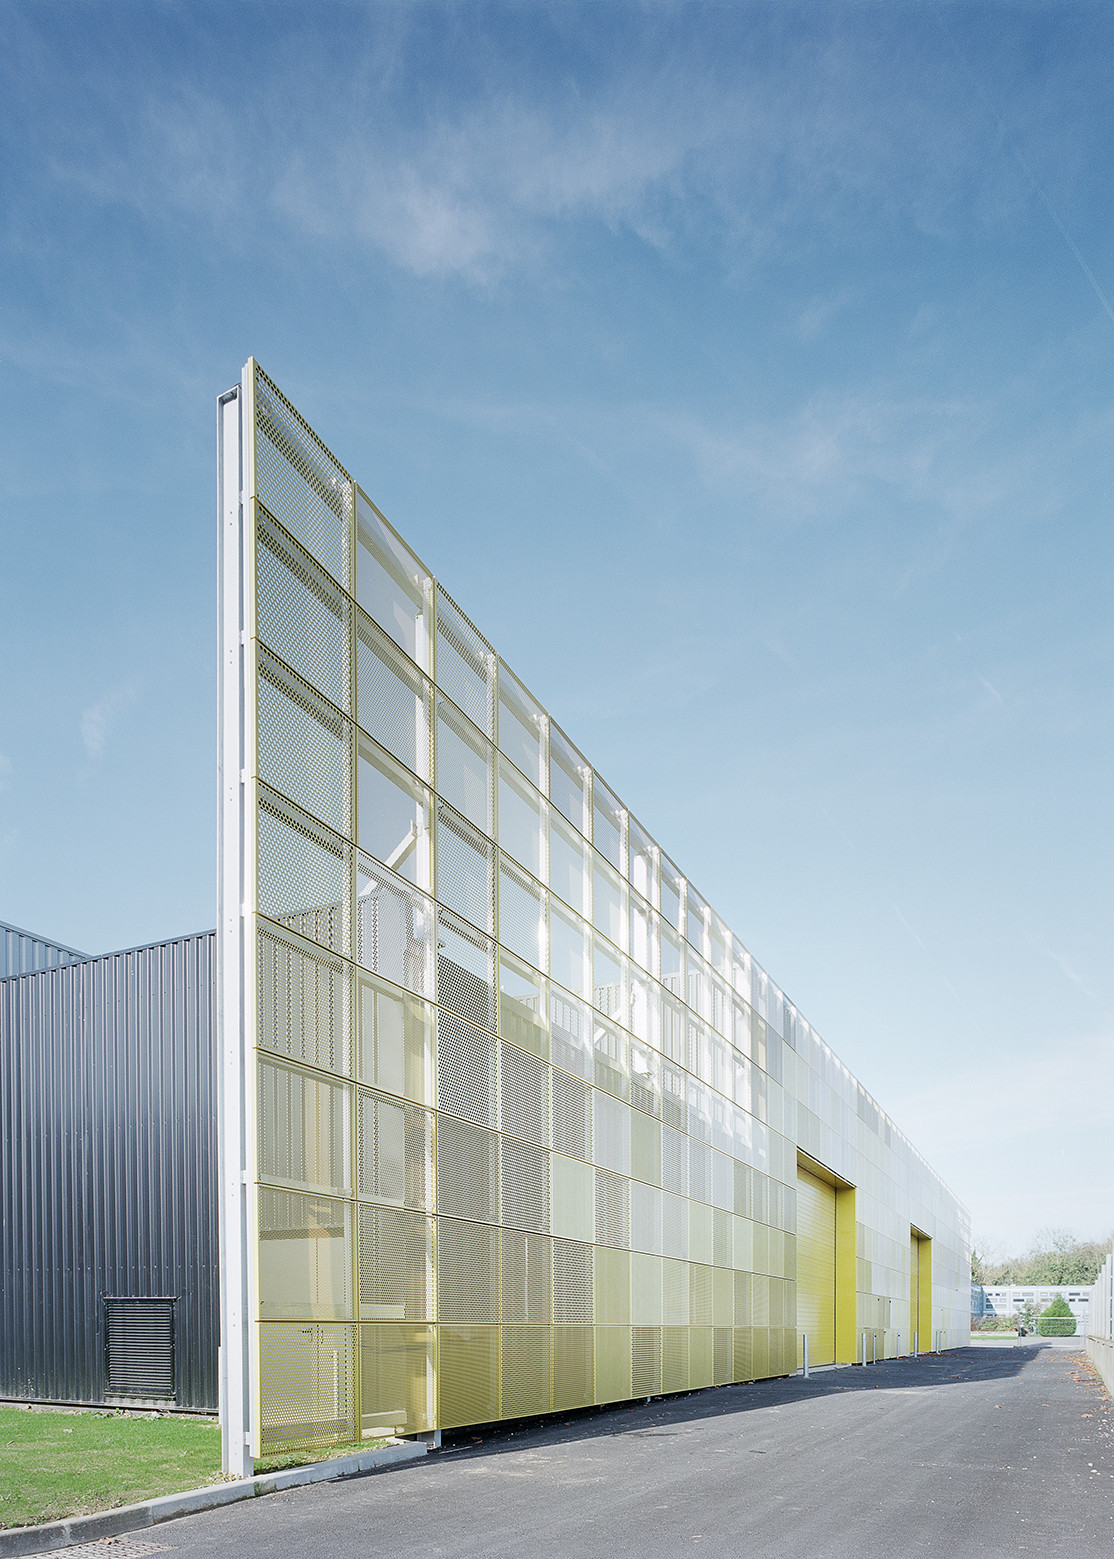 Gallery of lyc e georges cormier highschool extension for Extension architecte